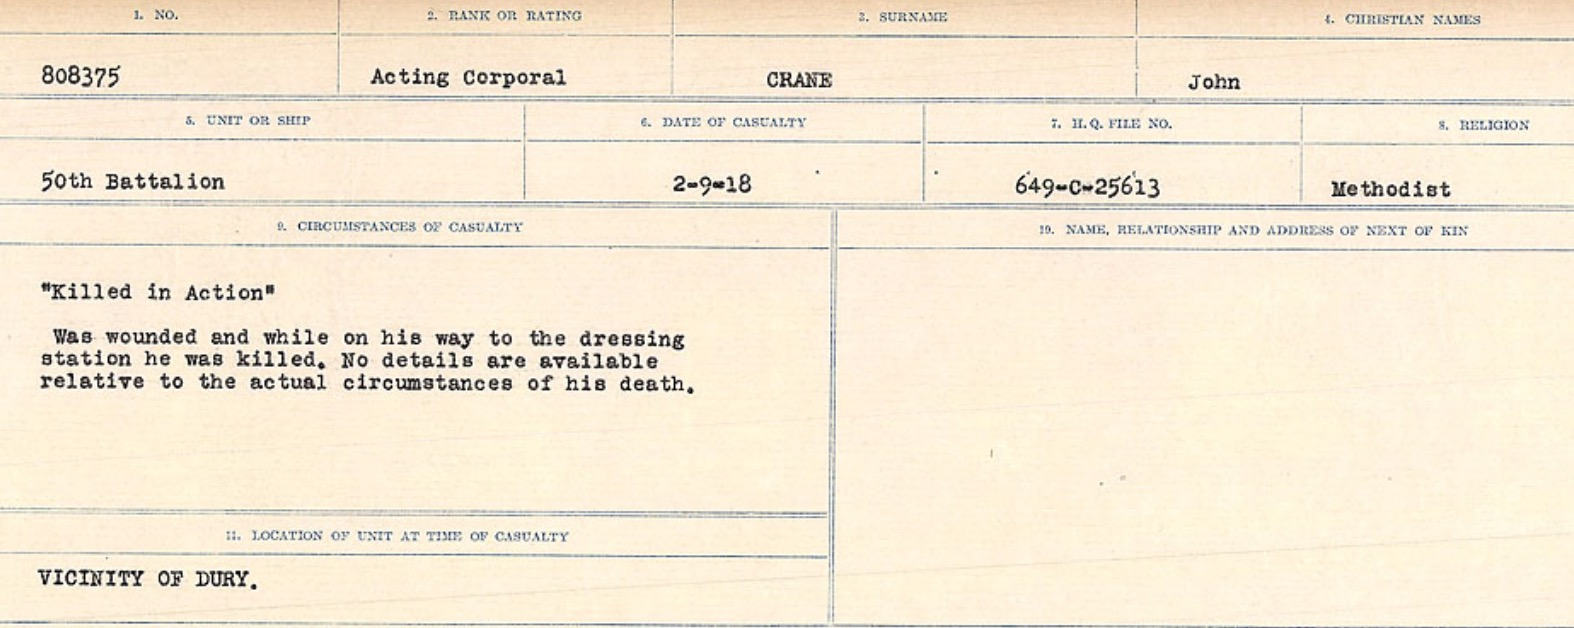 Circumstances of death registers– Source: Library and Archives Canada. CIRCUMSTANCES OF DEATH REGISTERS, FIRST WORLD WAR Surnames: CRABB TO CROSSLAND Microform Sequence 24; Volume Number 31829_B016733. Reference RG150, 1992-93/314, 168. Page 225 of 788.